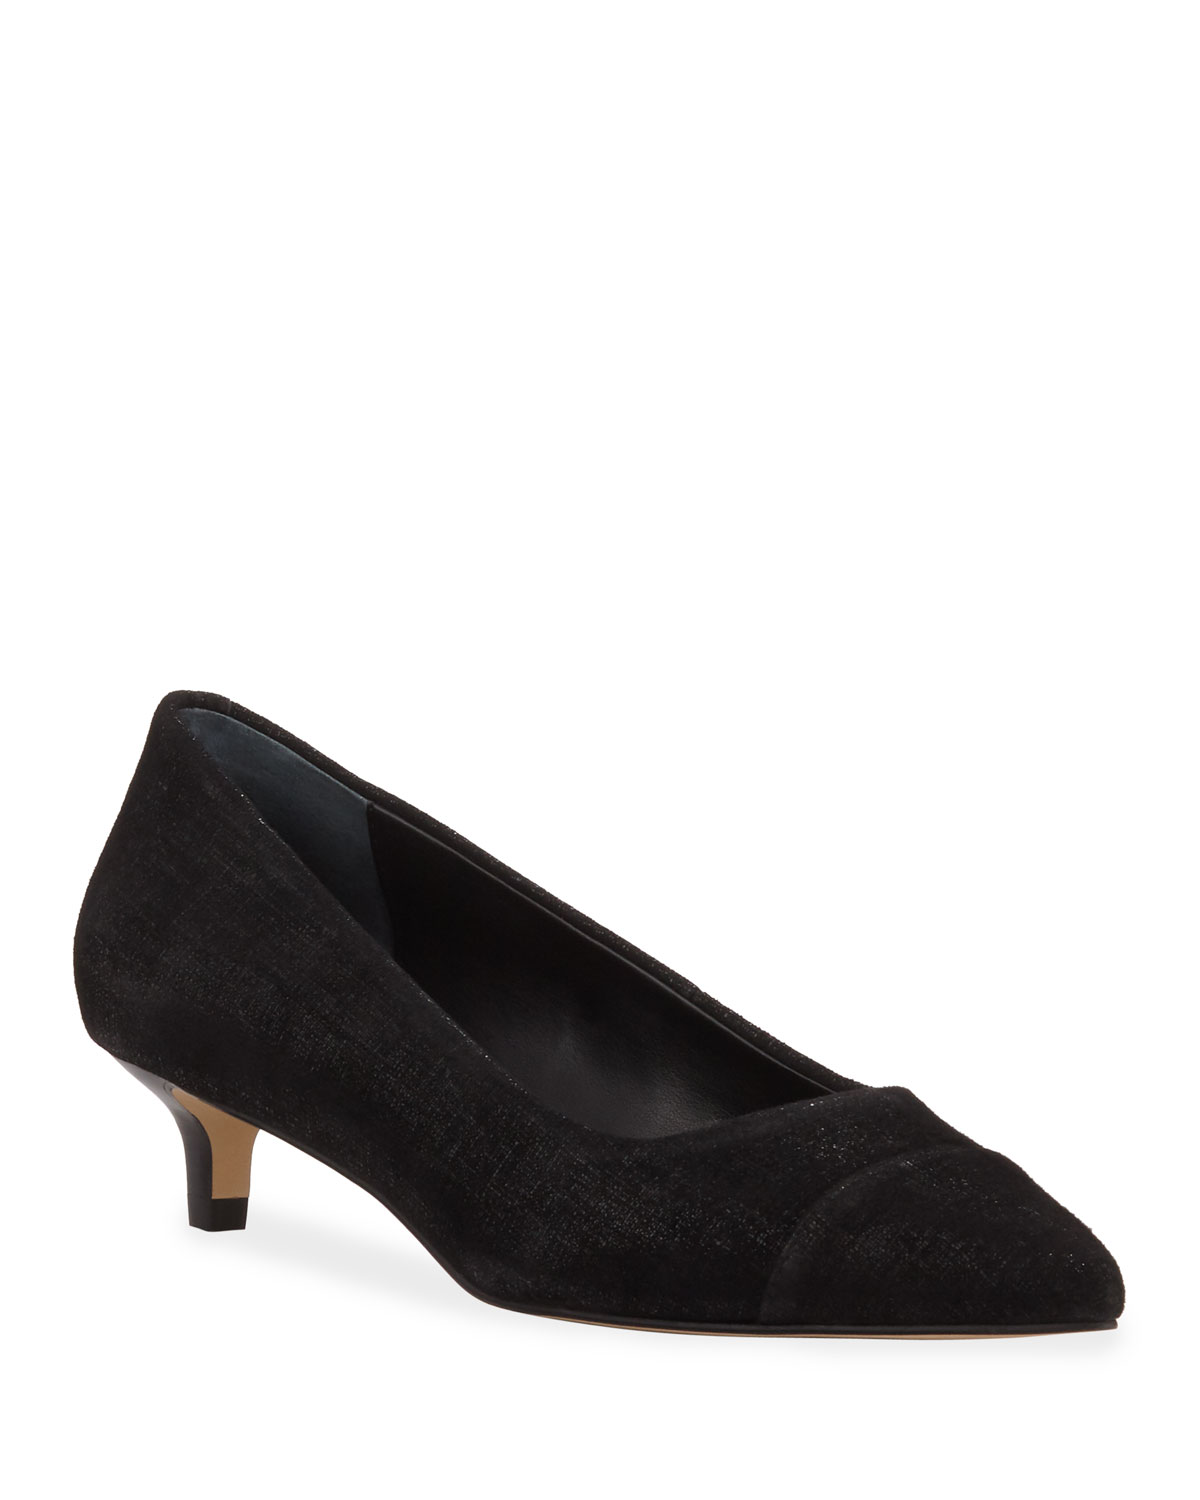 Ibiz Metallic Suede Kitten Heel Pumps